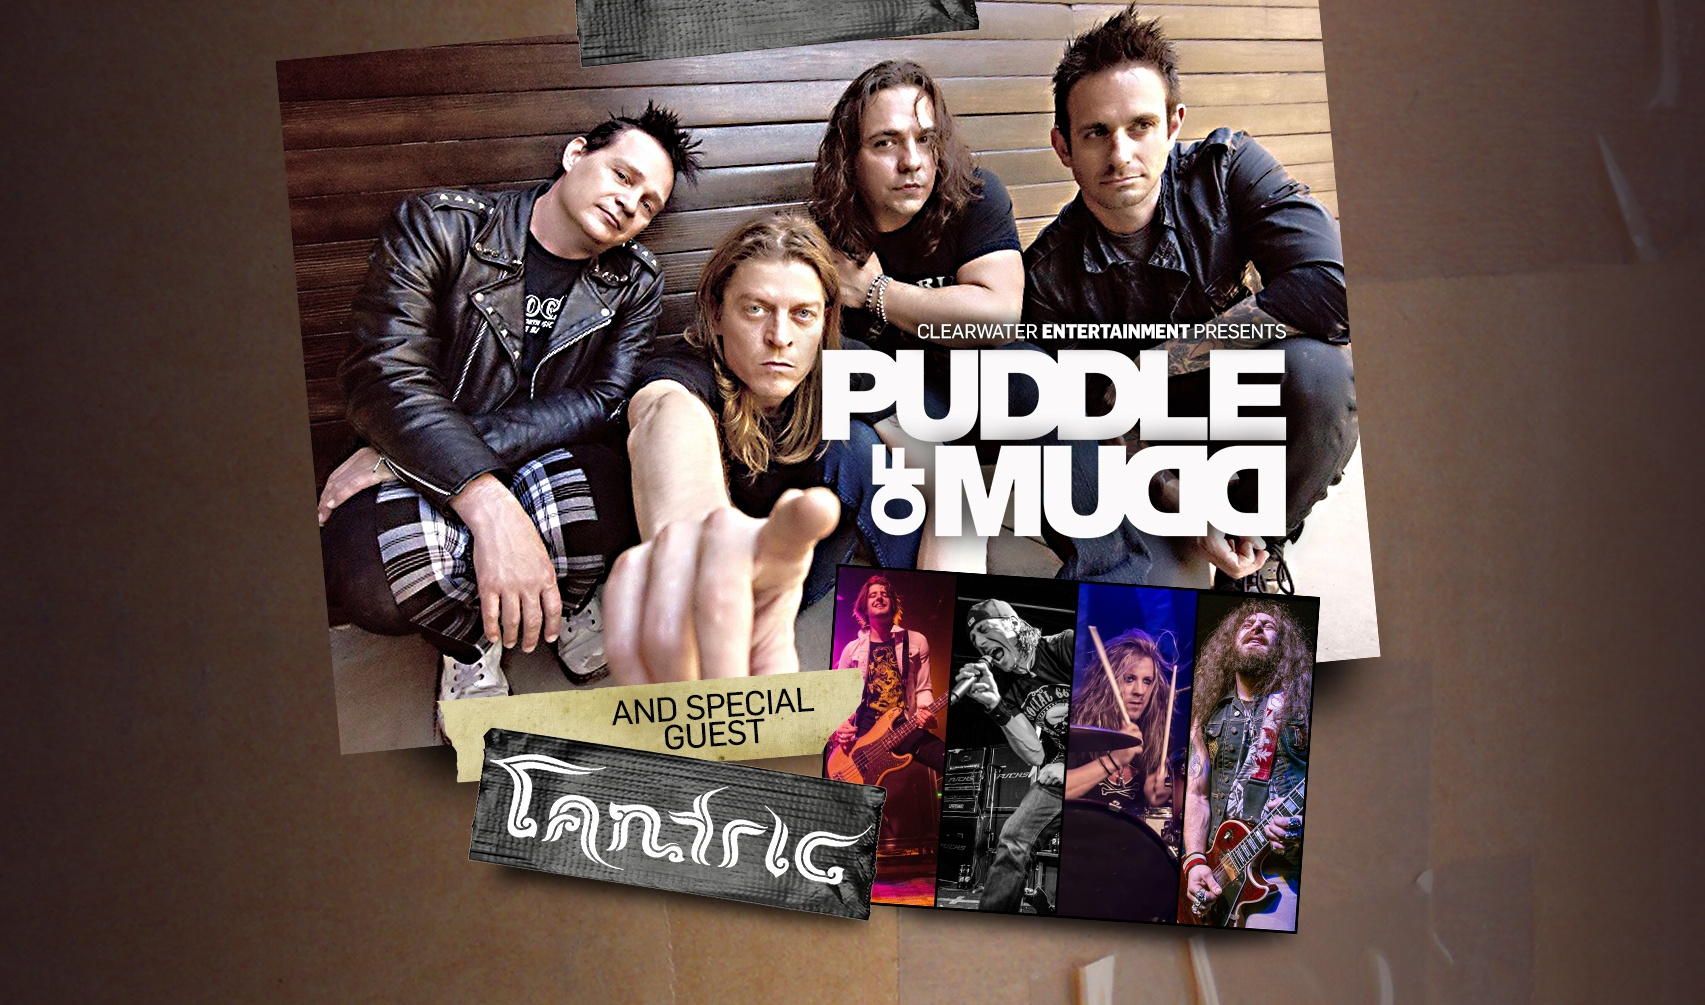 Puddle of Mud w/special guest Tantric